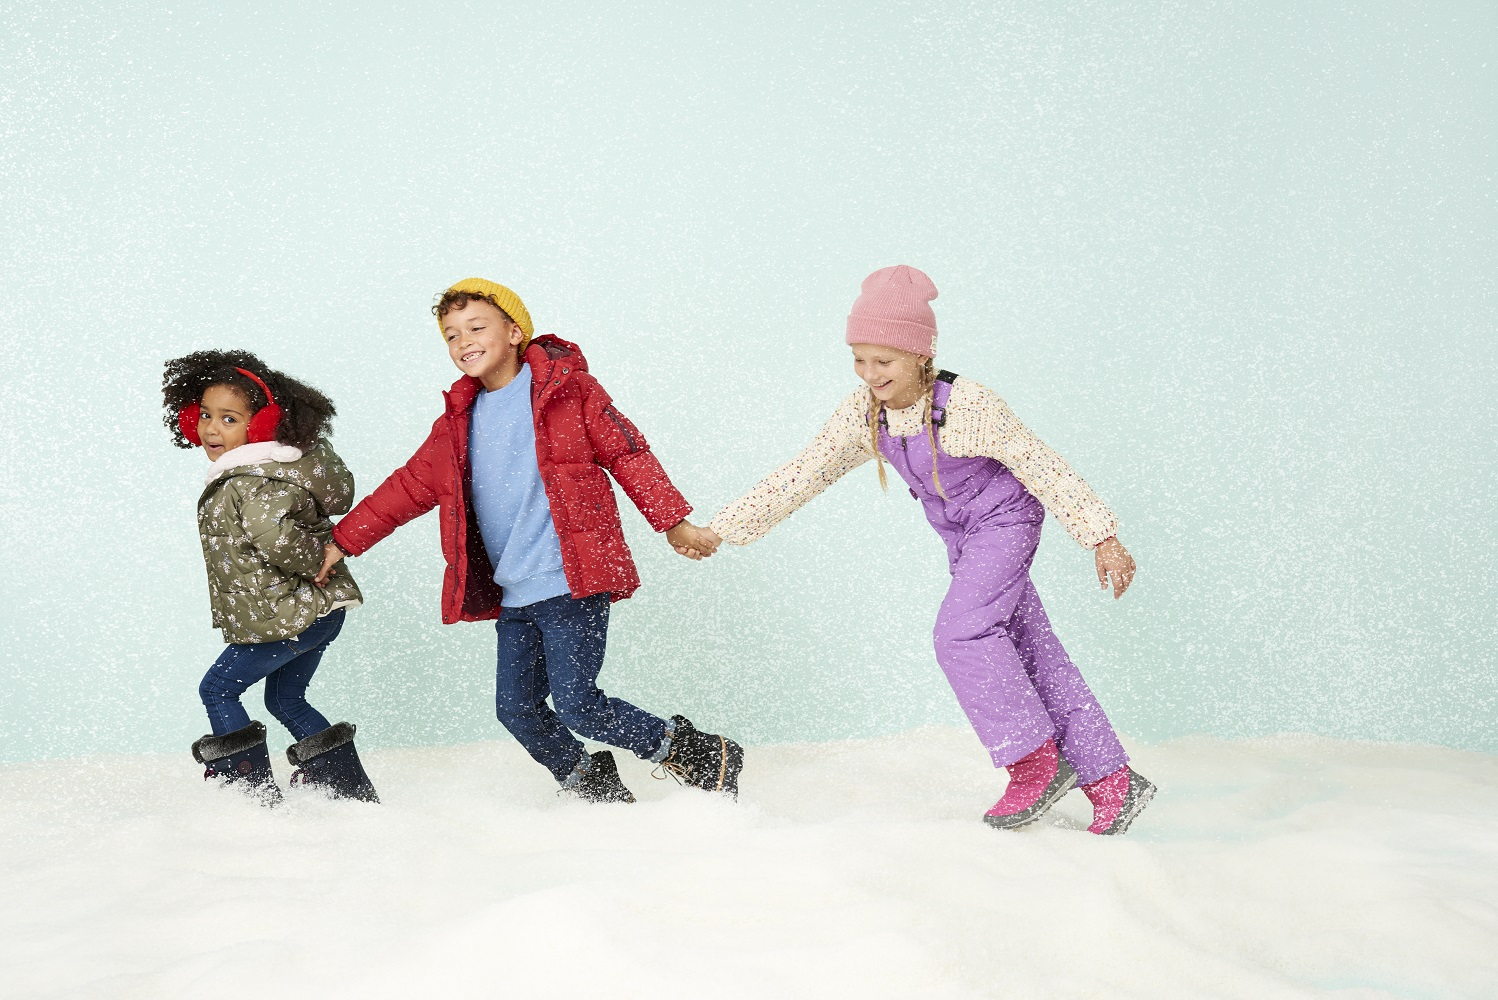 Holiday18_Campaign_Kids_Snow_154_1991eBay_B_ADOBERGB.jpg